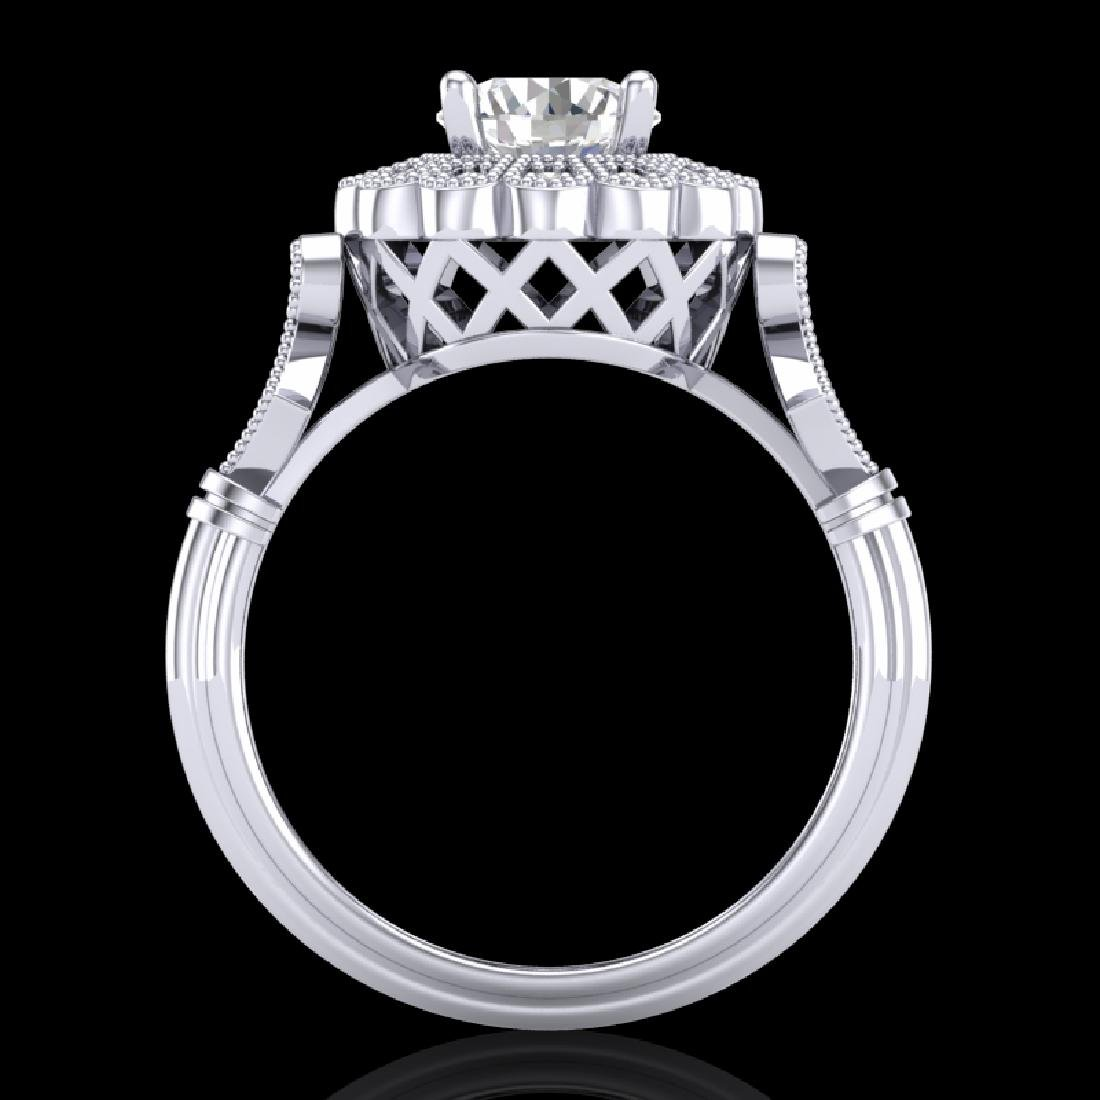 1.2 CTW VS/SI Diamond Solitaire Art Deco Ring 18K White